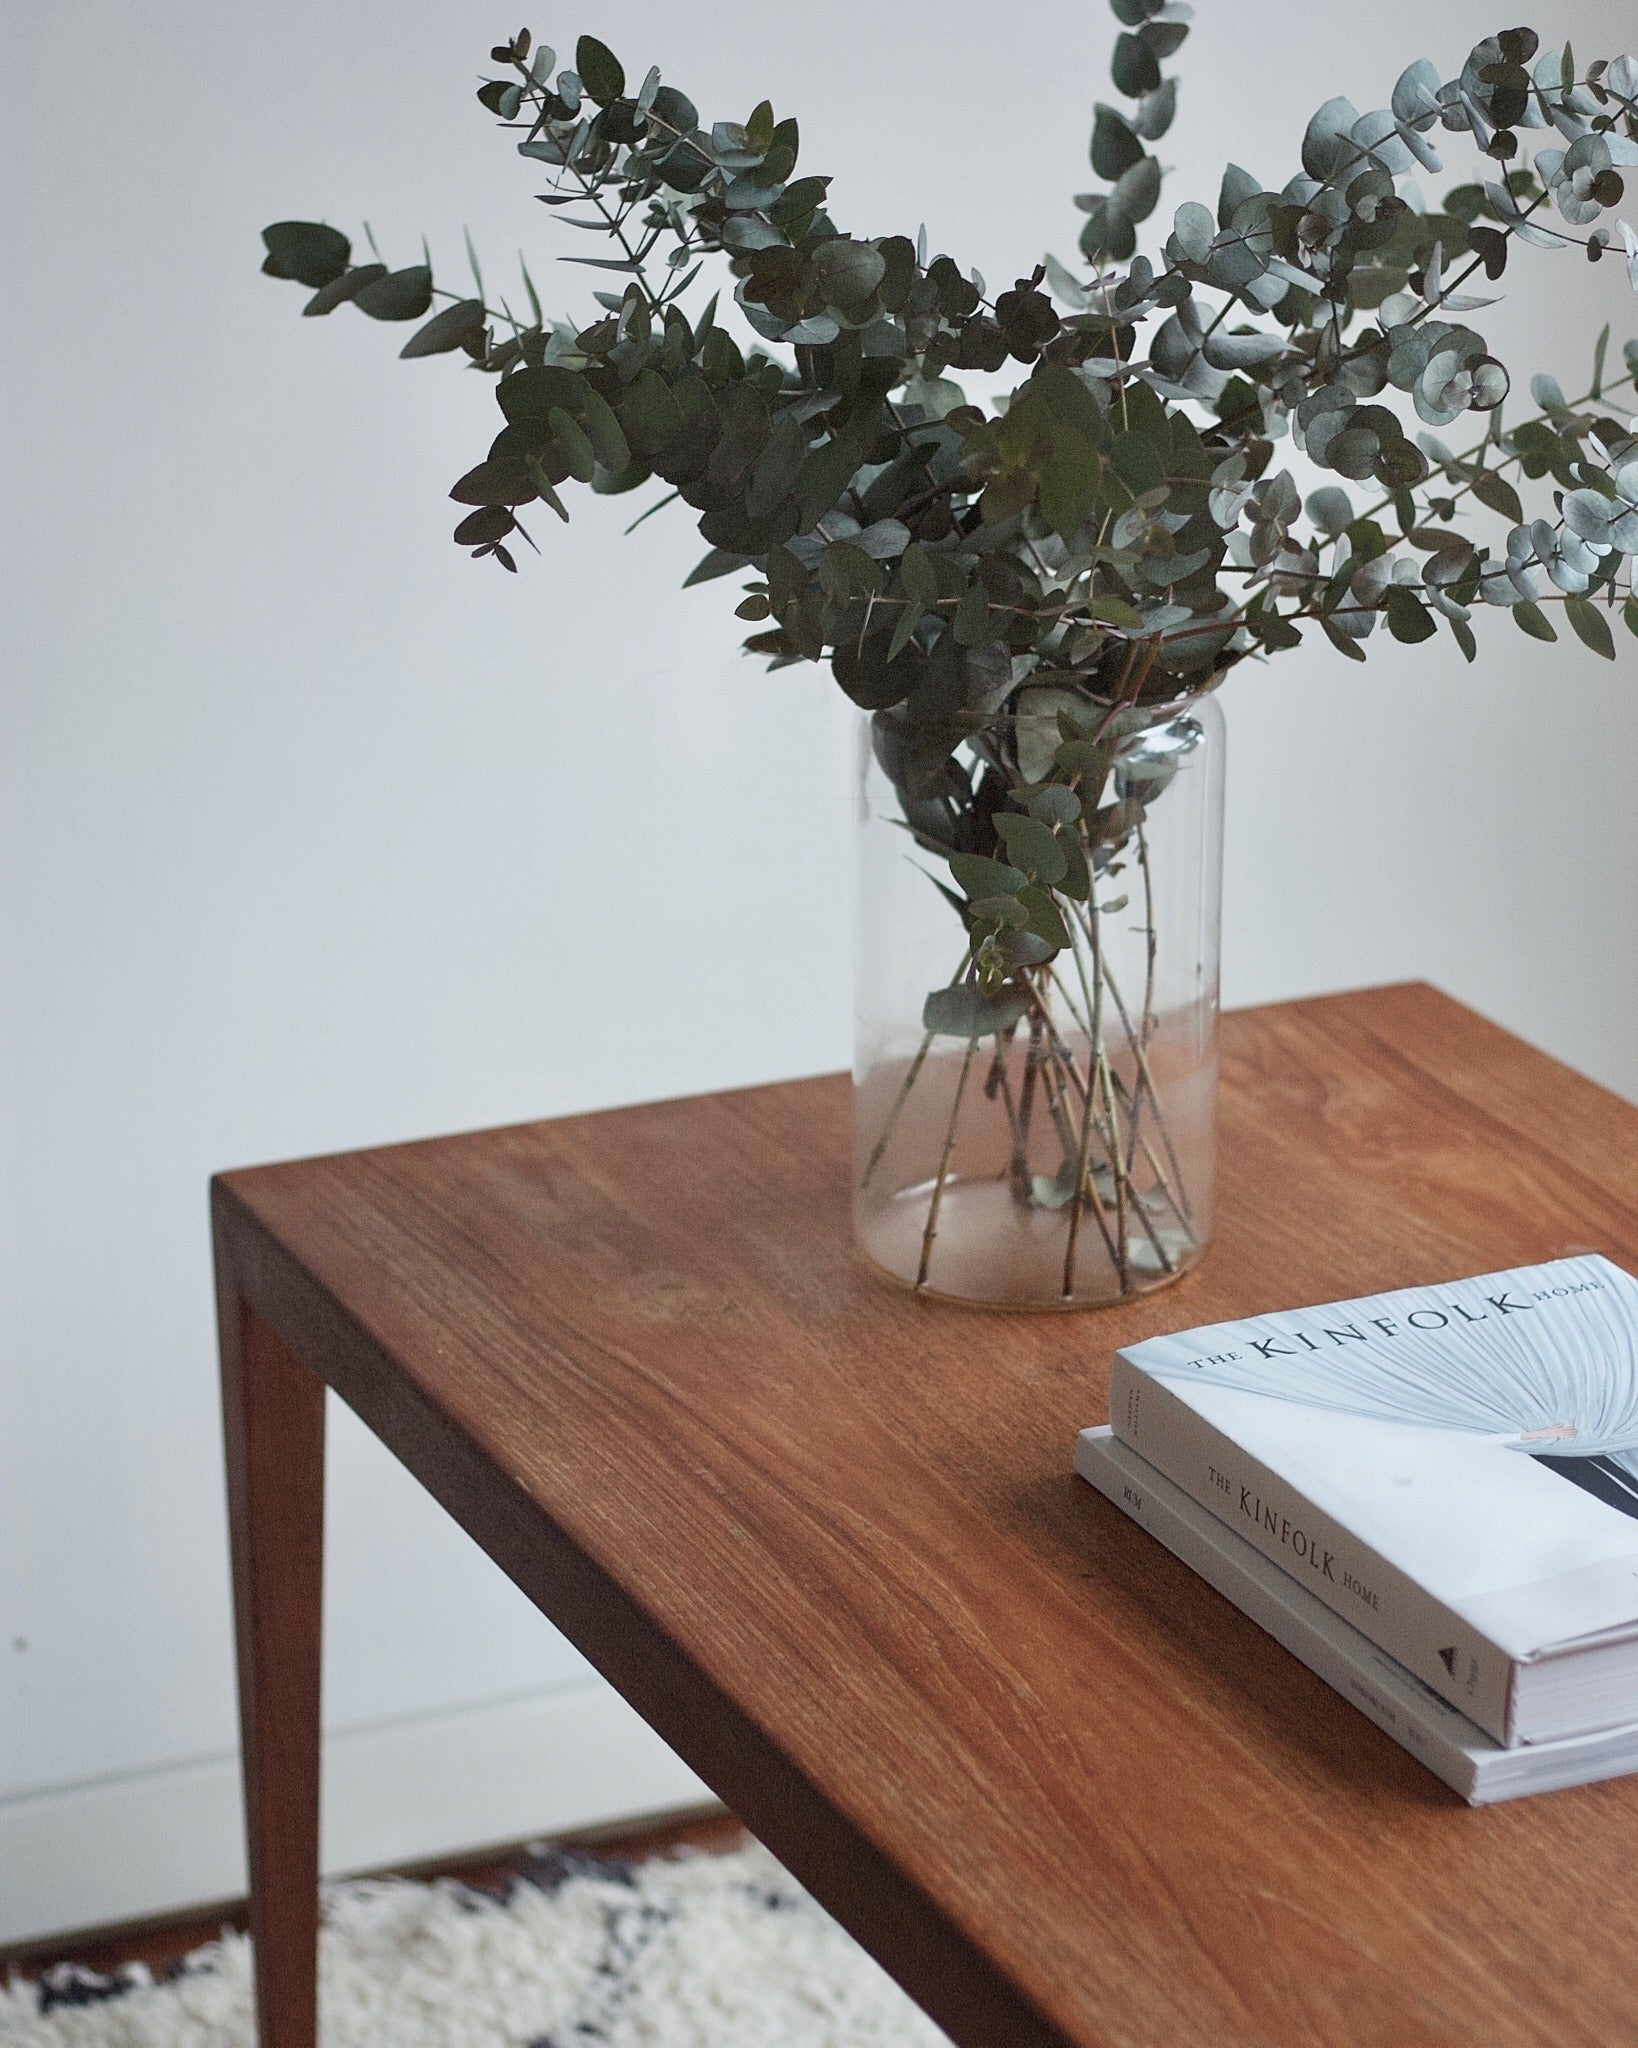 Danish Vintage Coffee Table by Severin Hansen available at NABOshop